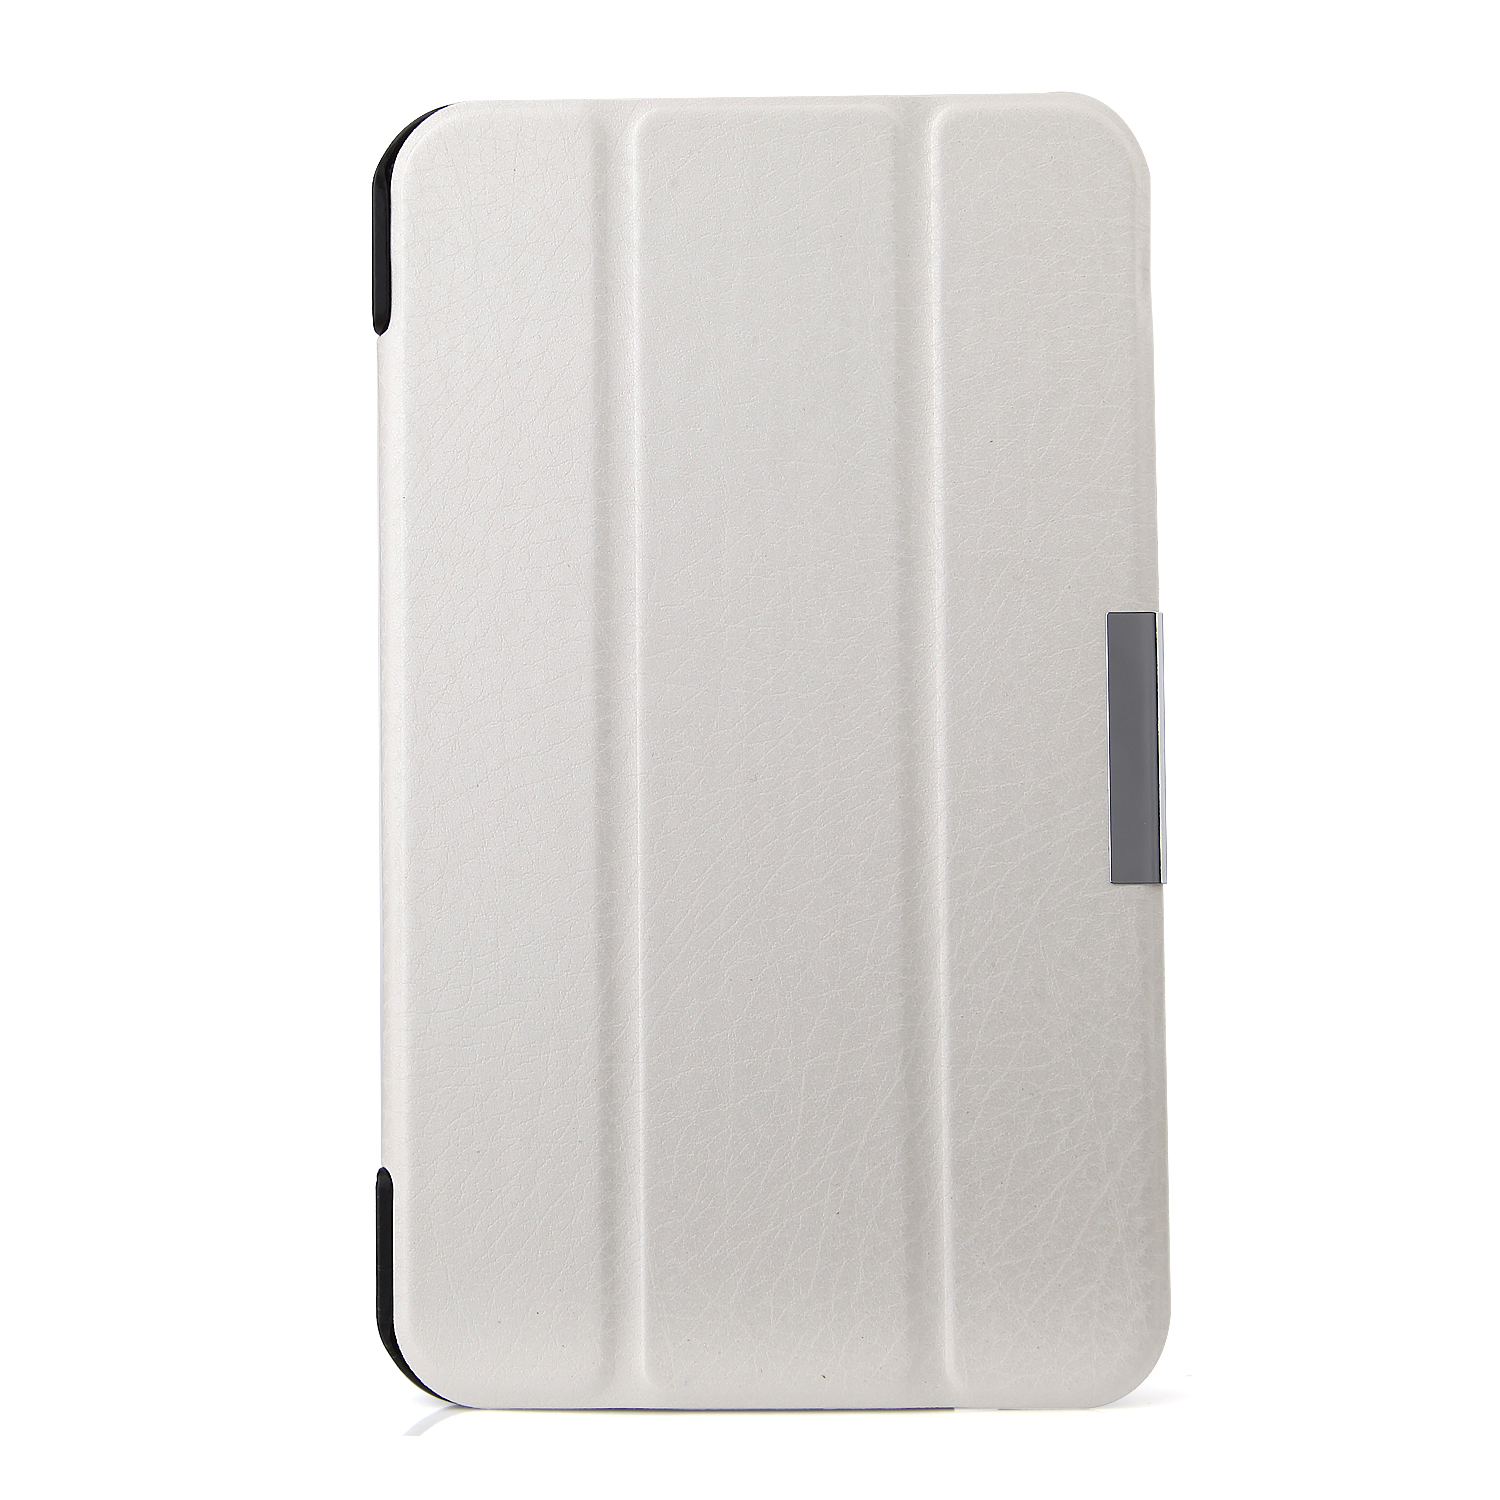 Protective PU Leather Stand Case Cover for FonePad 7 Tablet PC White